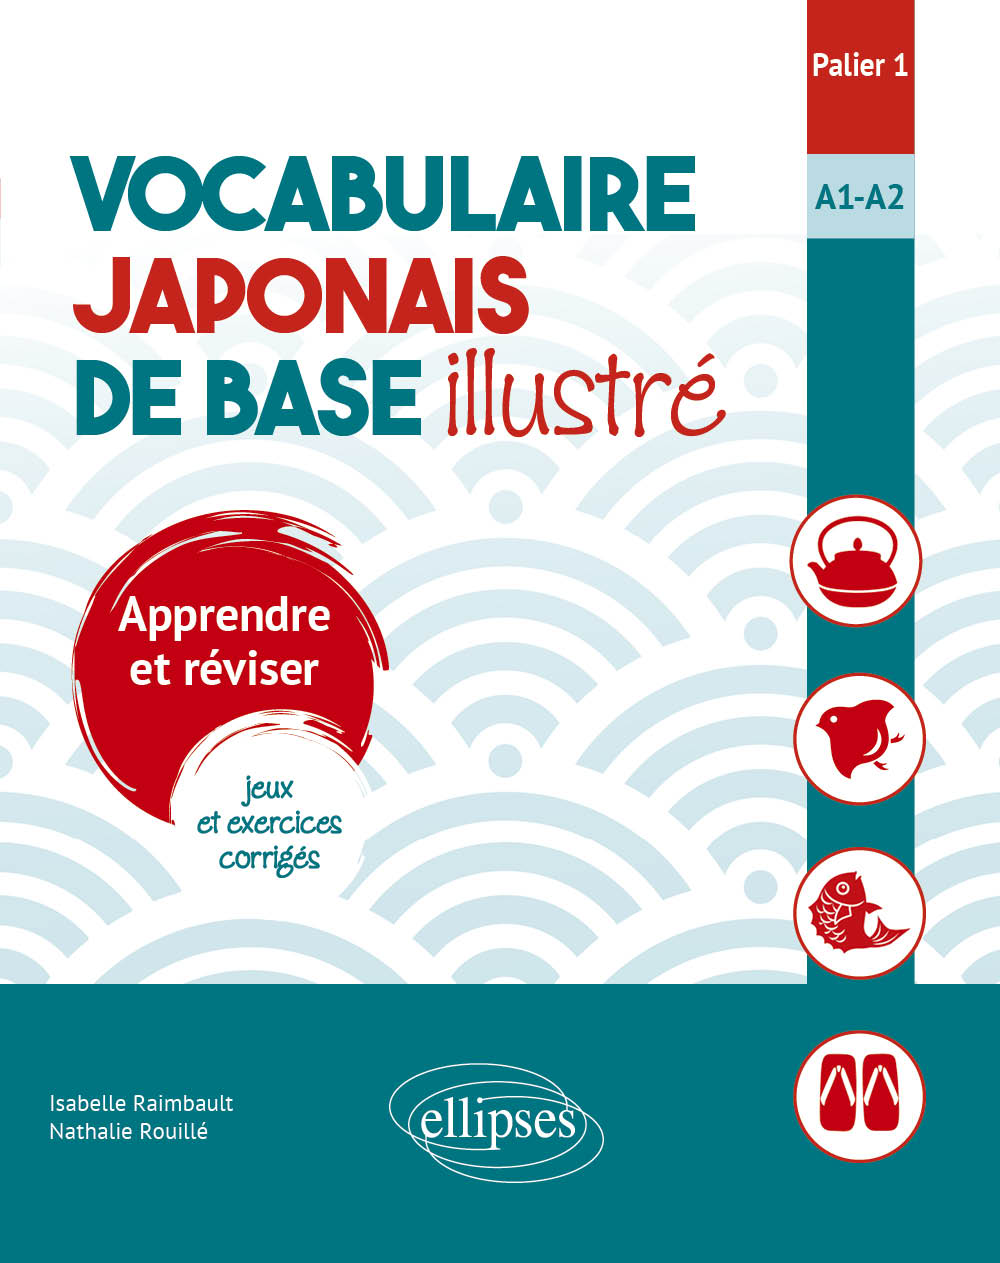 Vocabulaire japonais de base illustré. Palier 1.